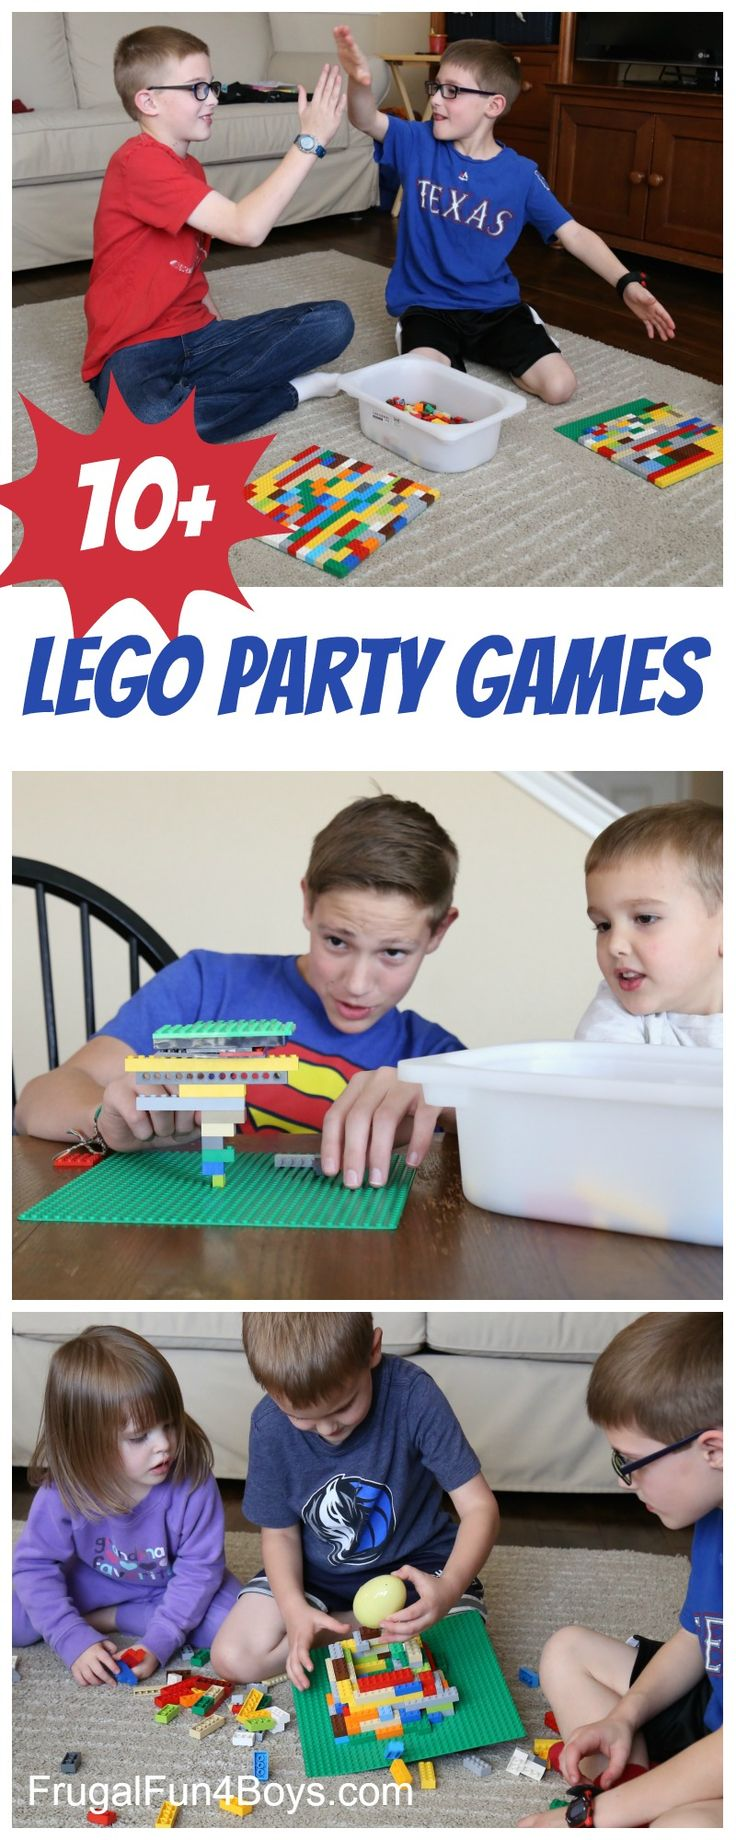 10+ Totally Awesome LEGO Party Games - LEGO challenges, minute-to-win-it style games, etc. So fun!!